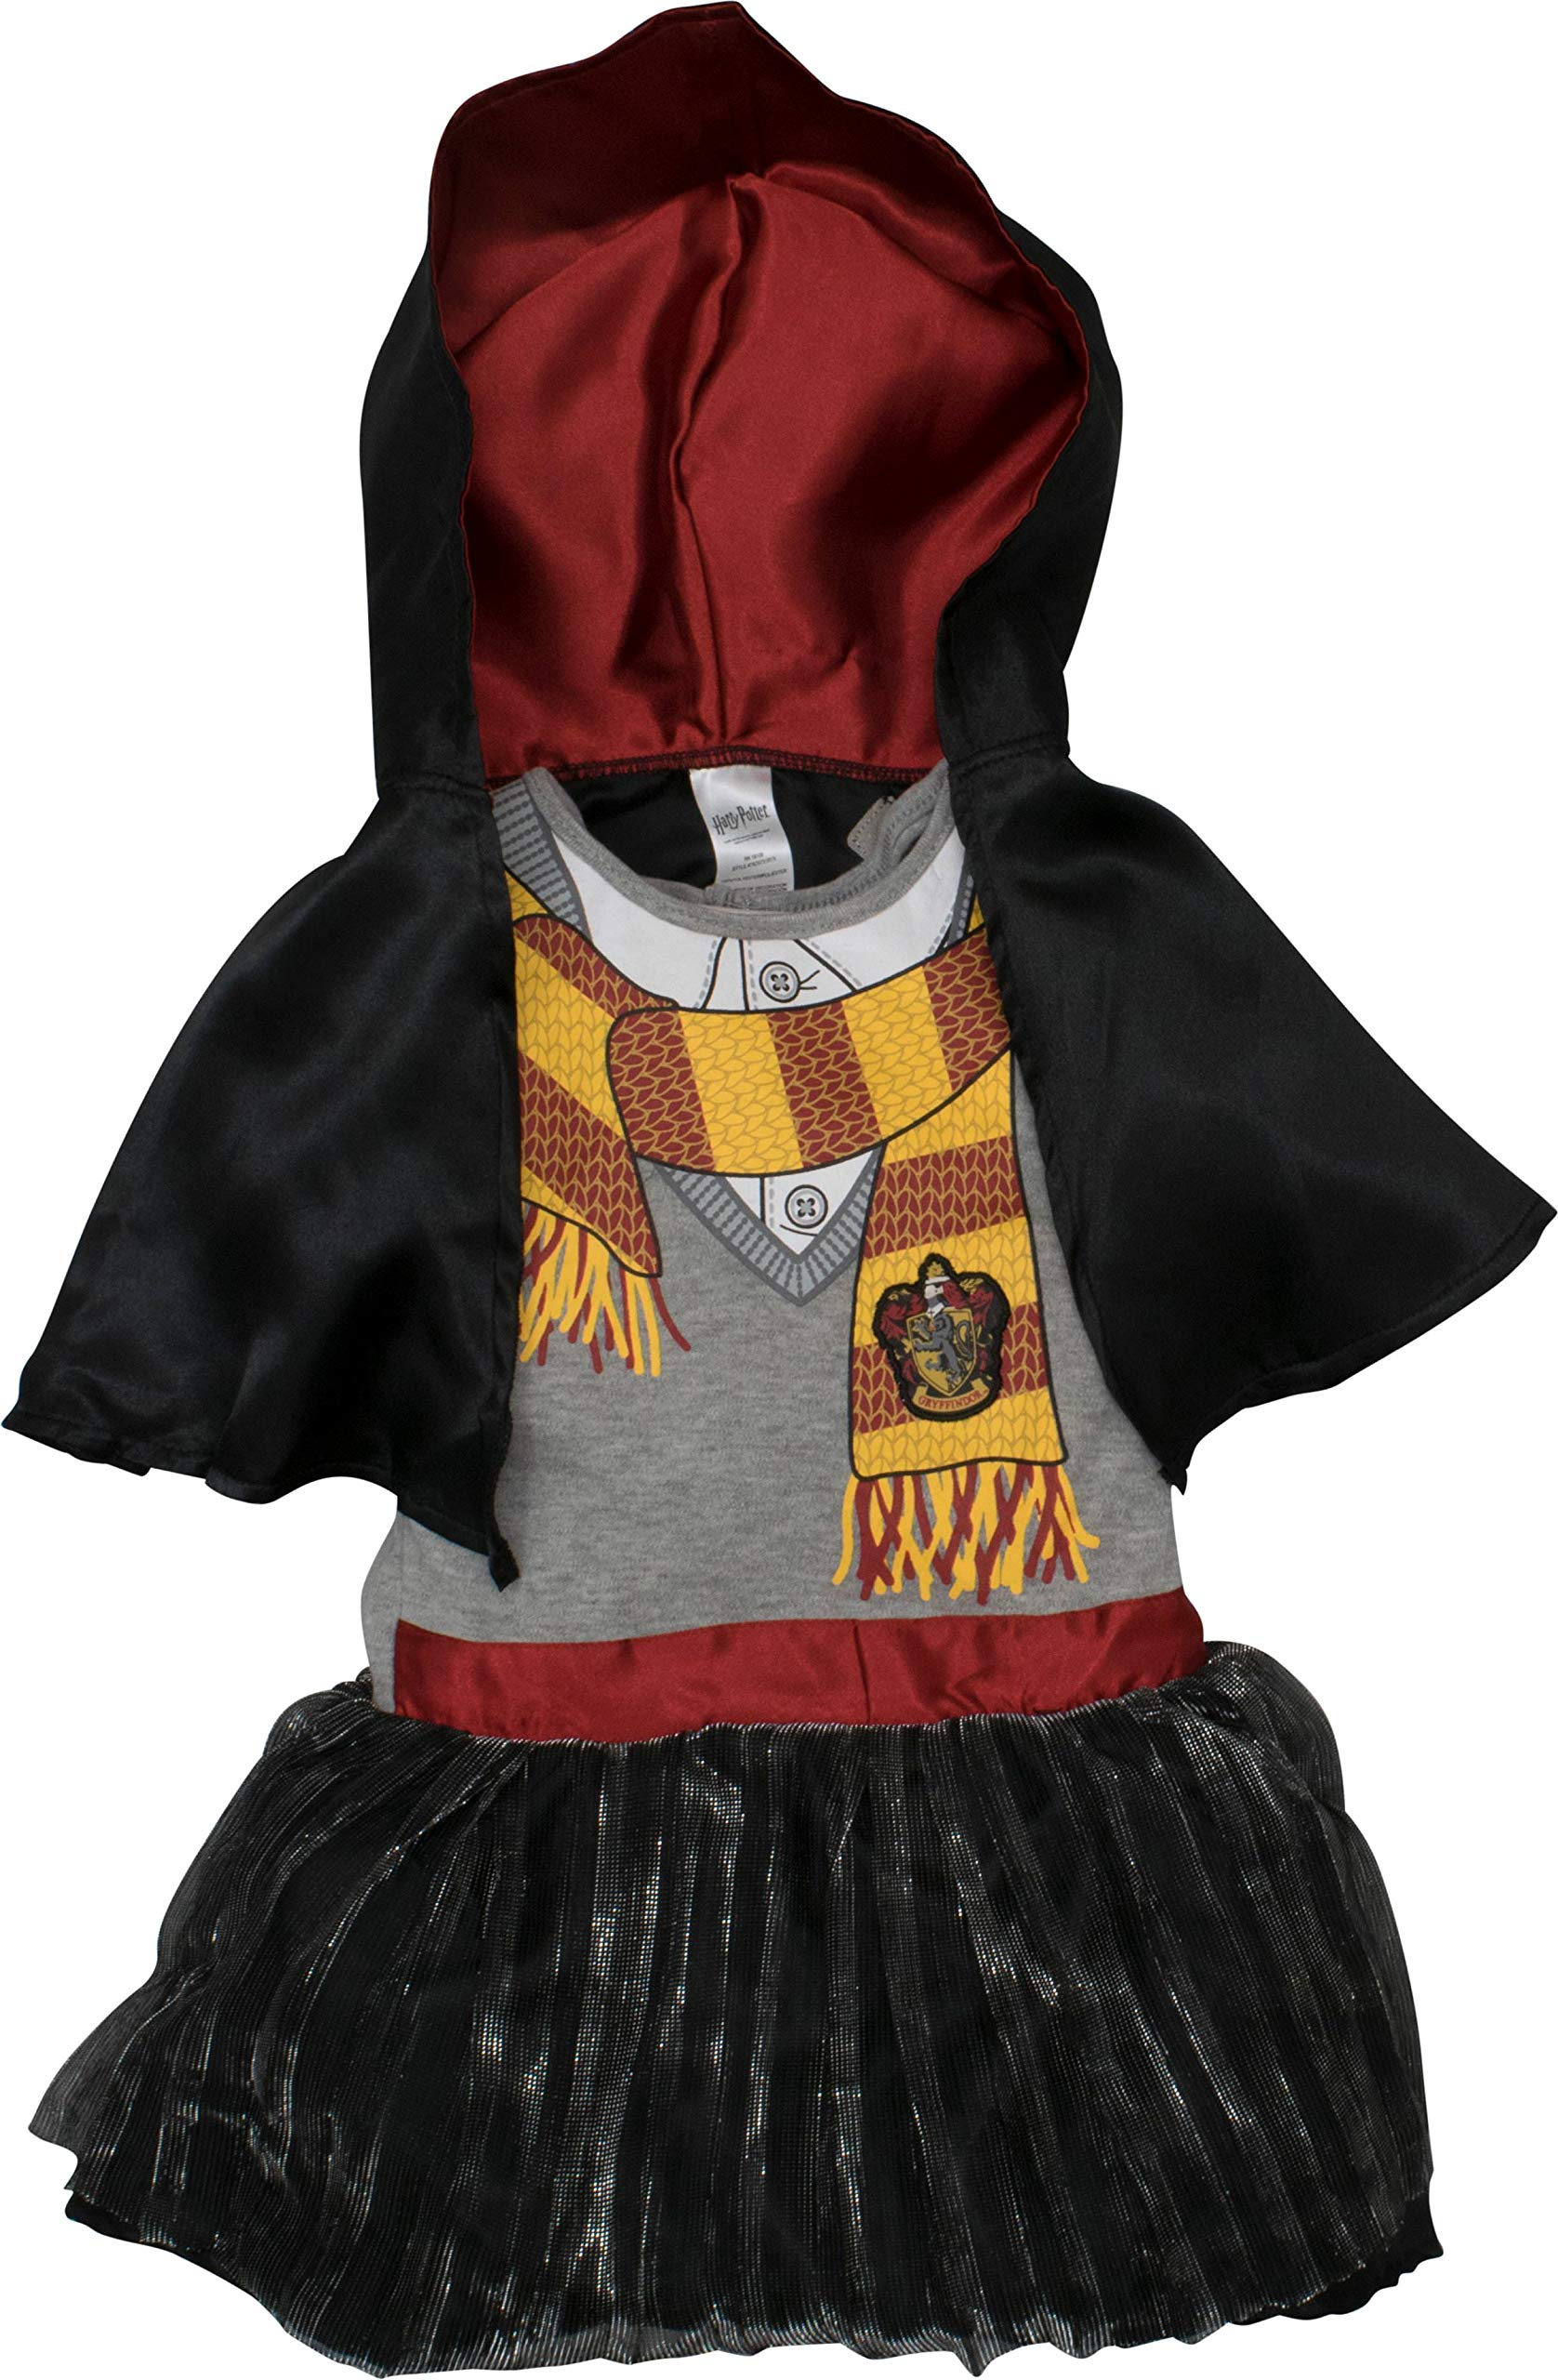 Warner Bros. Harry Potter Toddler Girls' Hooded Costume Ruffle Dress with Cape (2T)